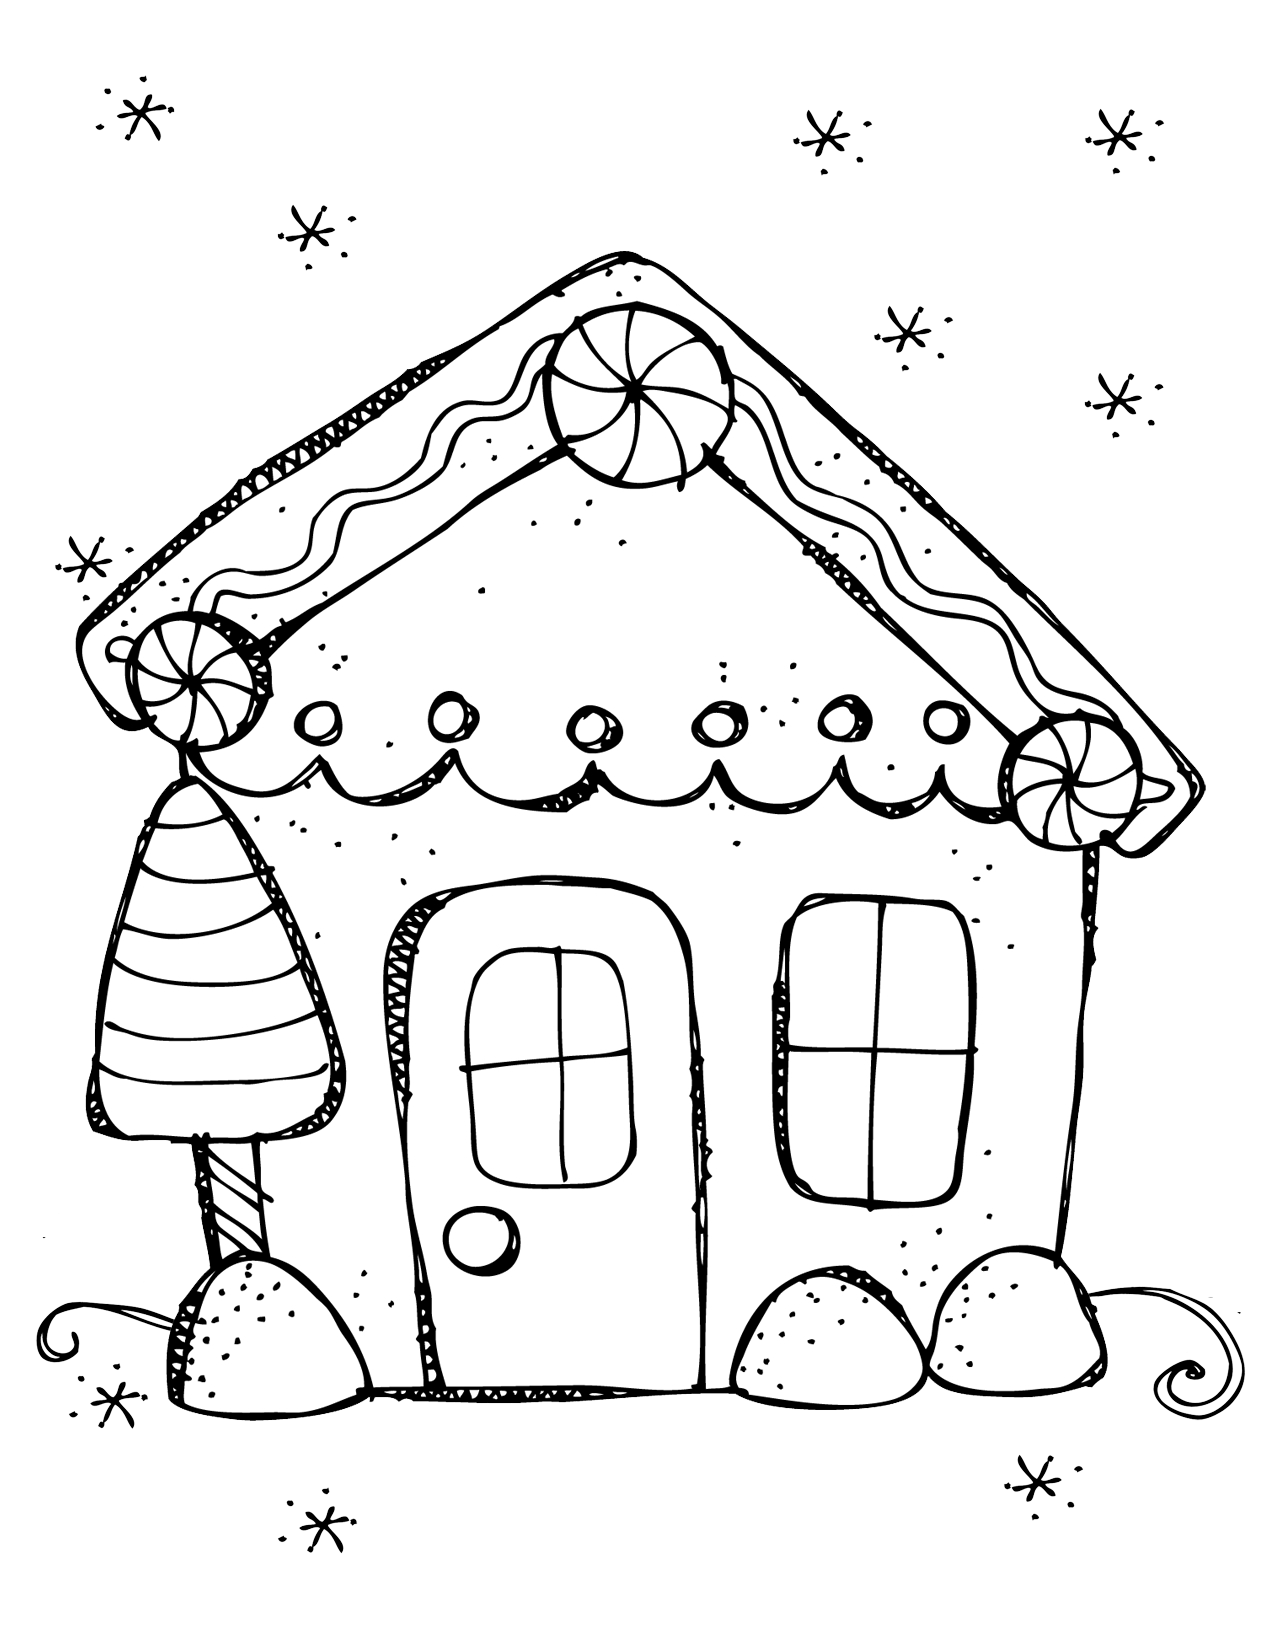 Startling Whoville Houses Coloring